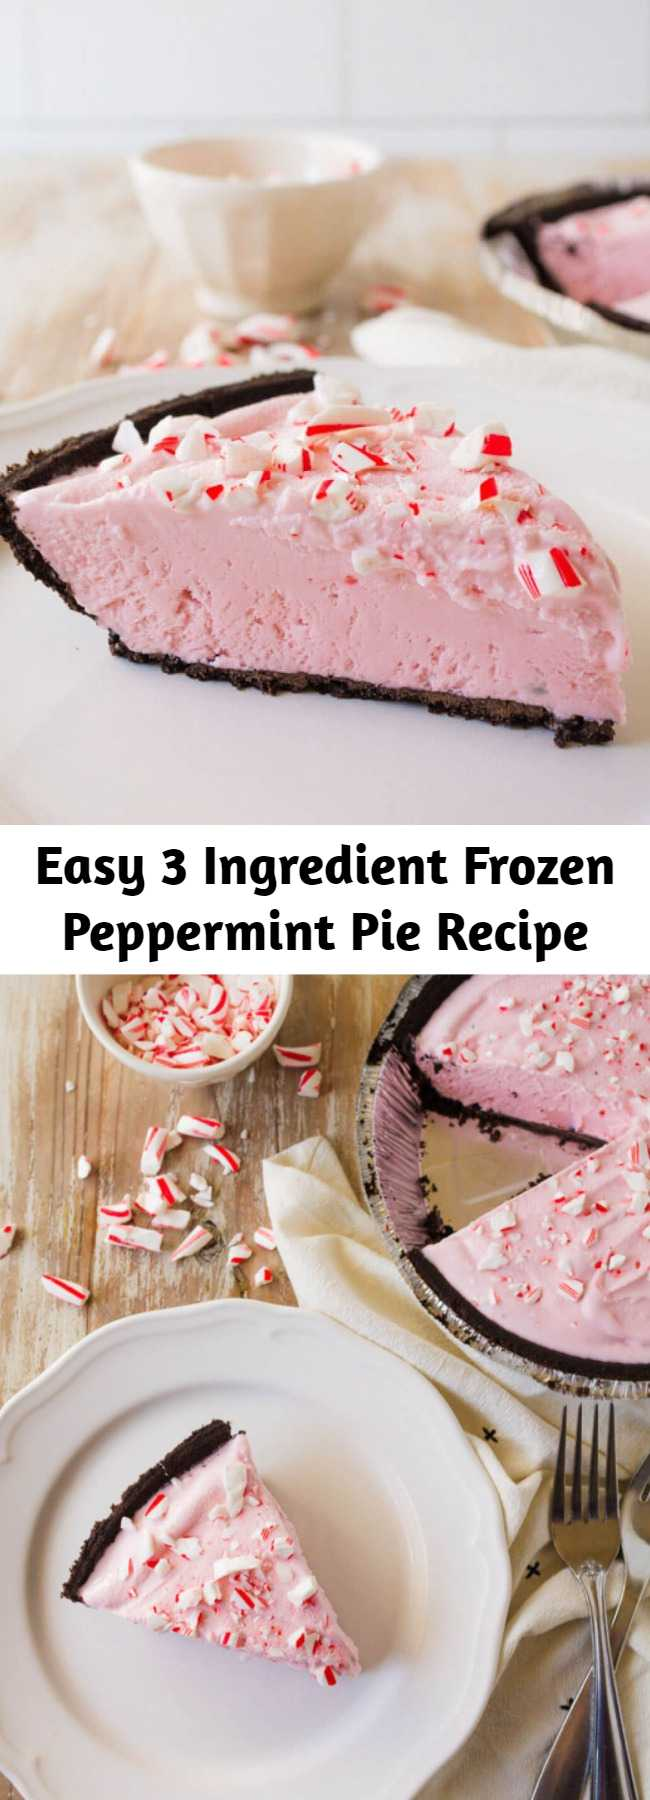 Easy 3 Ingredient Frozen Peppermint Pie Recipe - Make this Frozen Peppermint Pie using only 3 things.  It's the easiest recipe and so wonderful for the holidays!